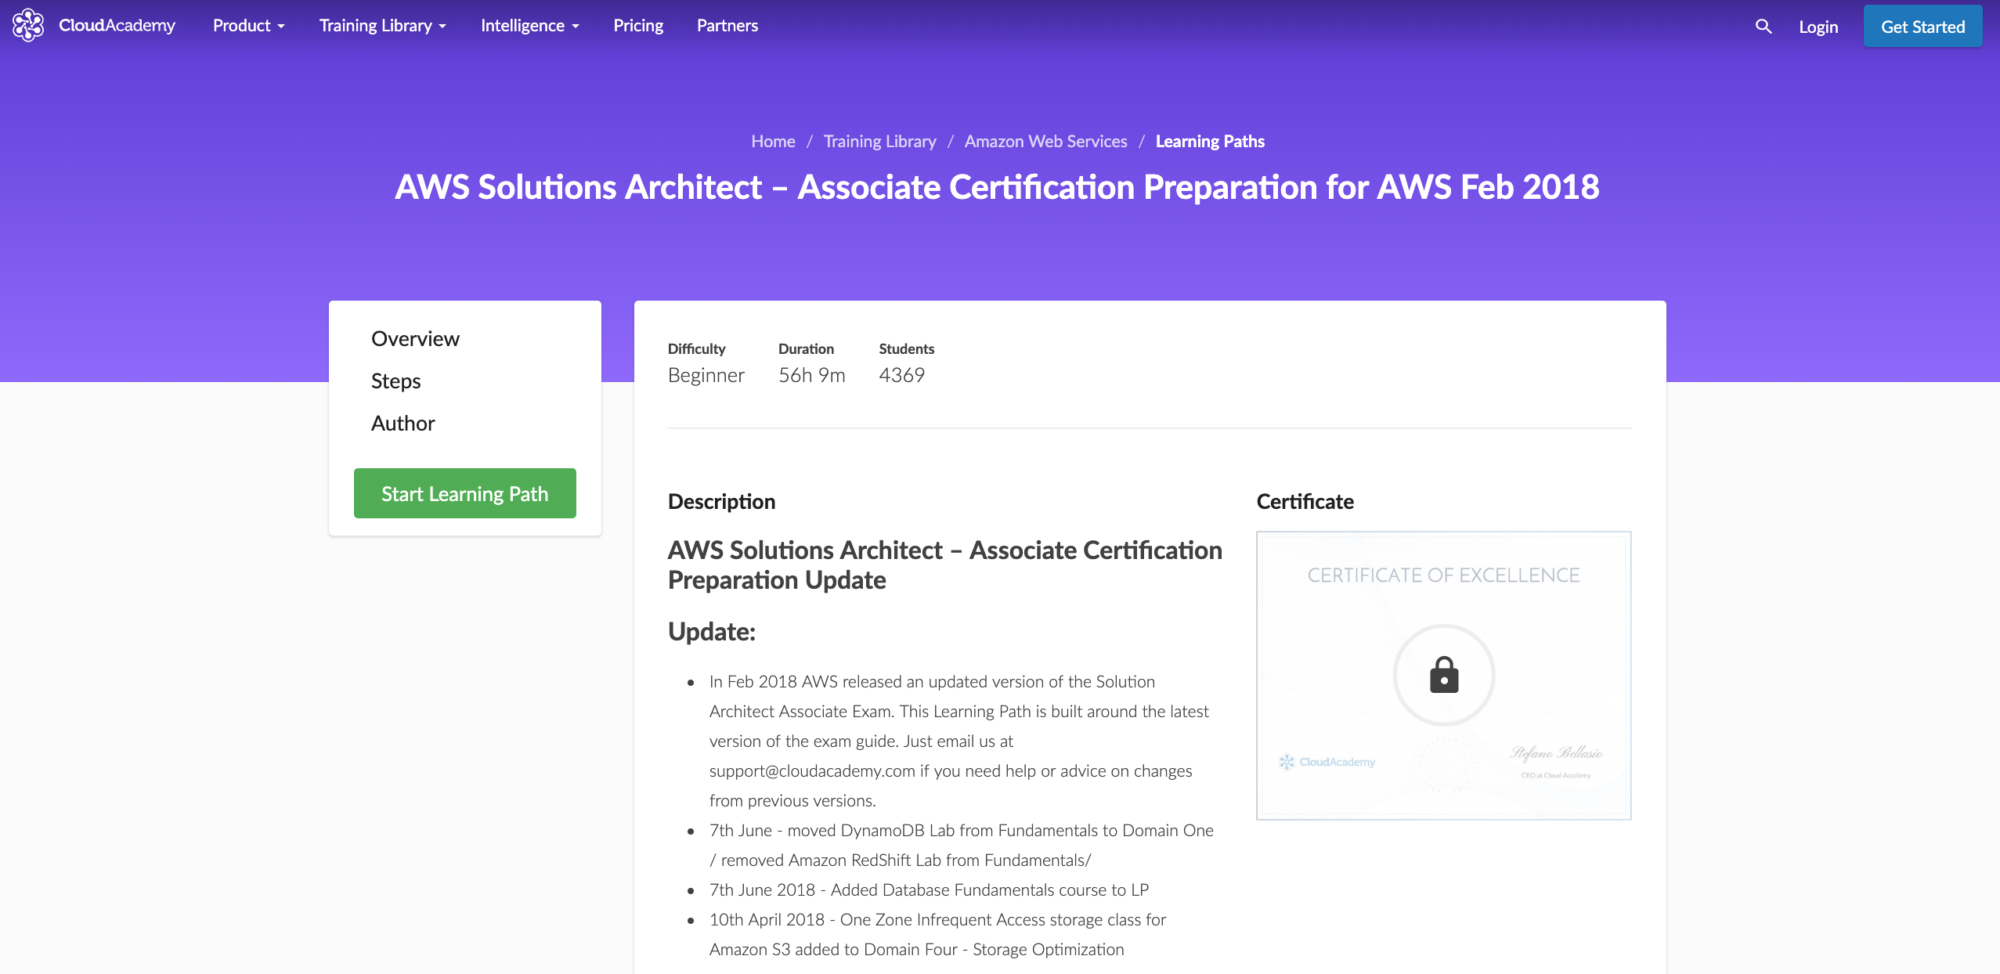 AWS Solutions Architect – Associate Certification Preparation for AWS Feb 2018